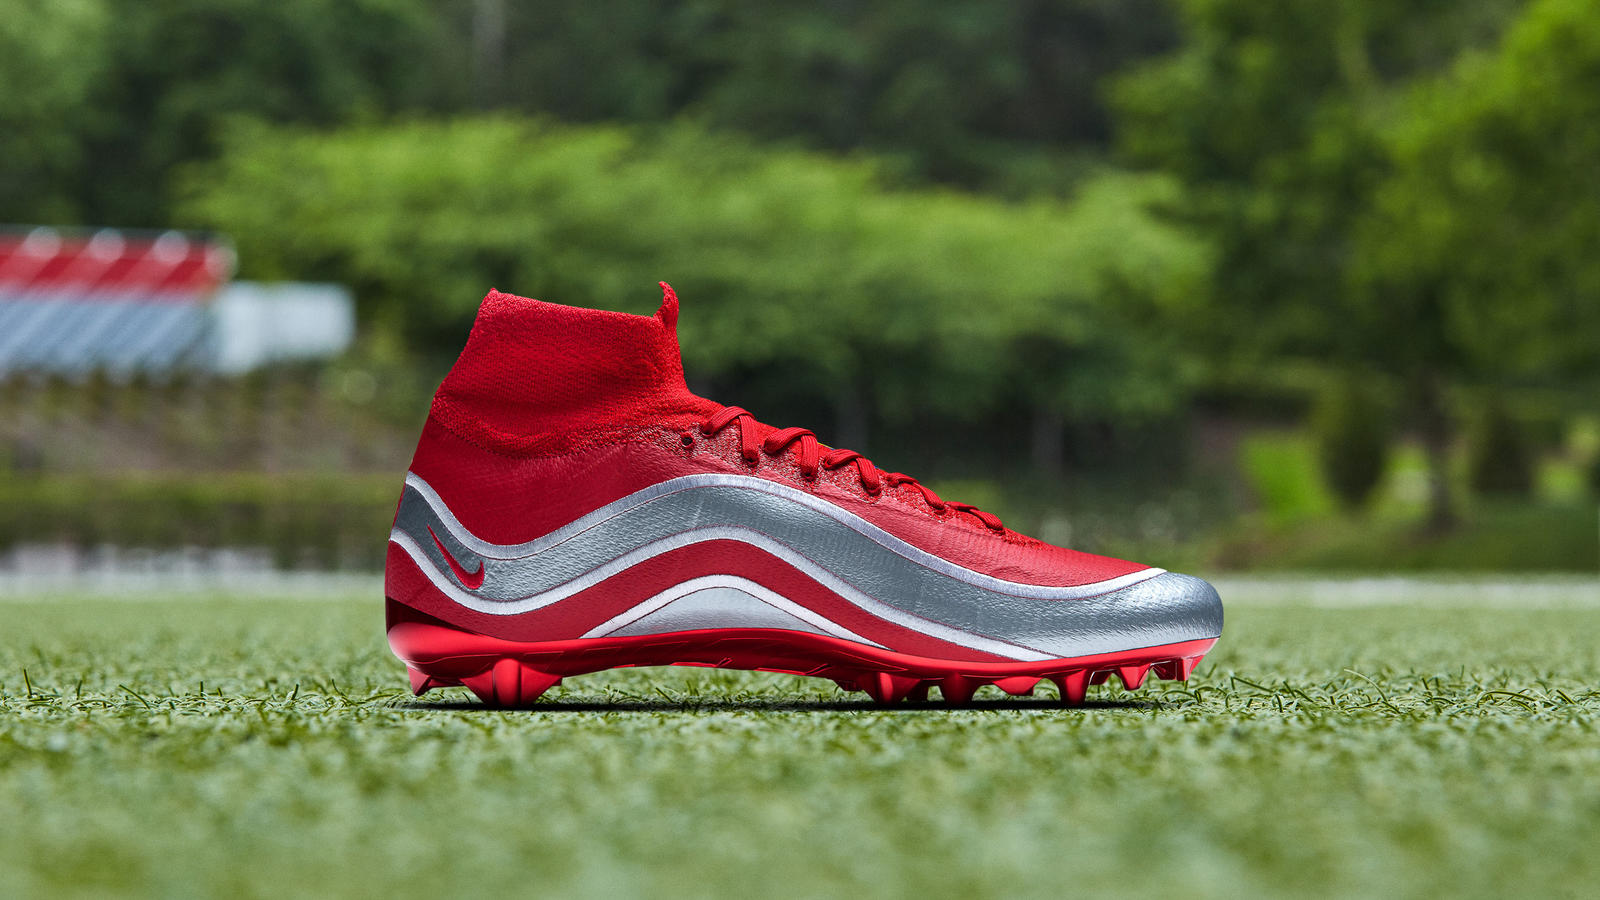 Featuredfootwear obj pregame 2018 game2 mercurial 125 hd 1600